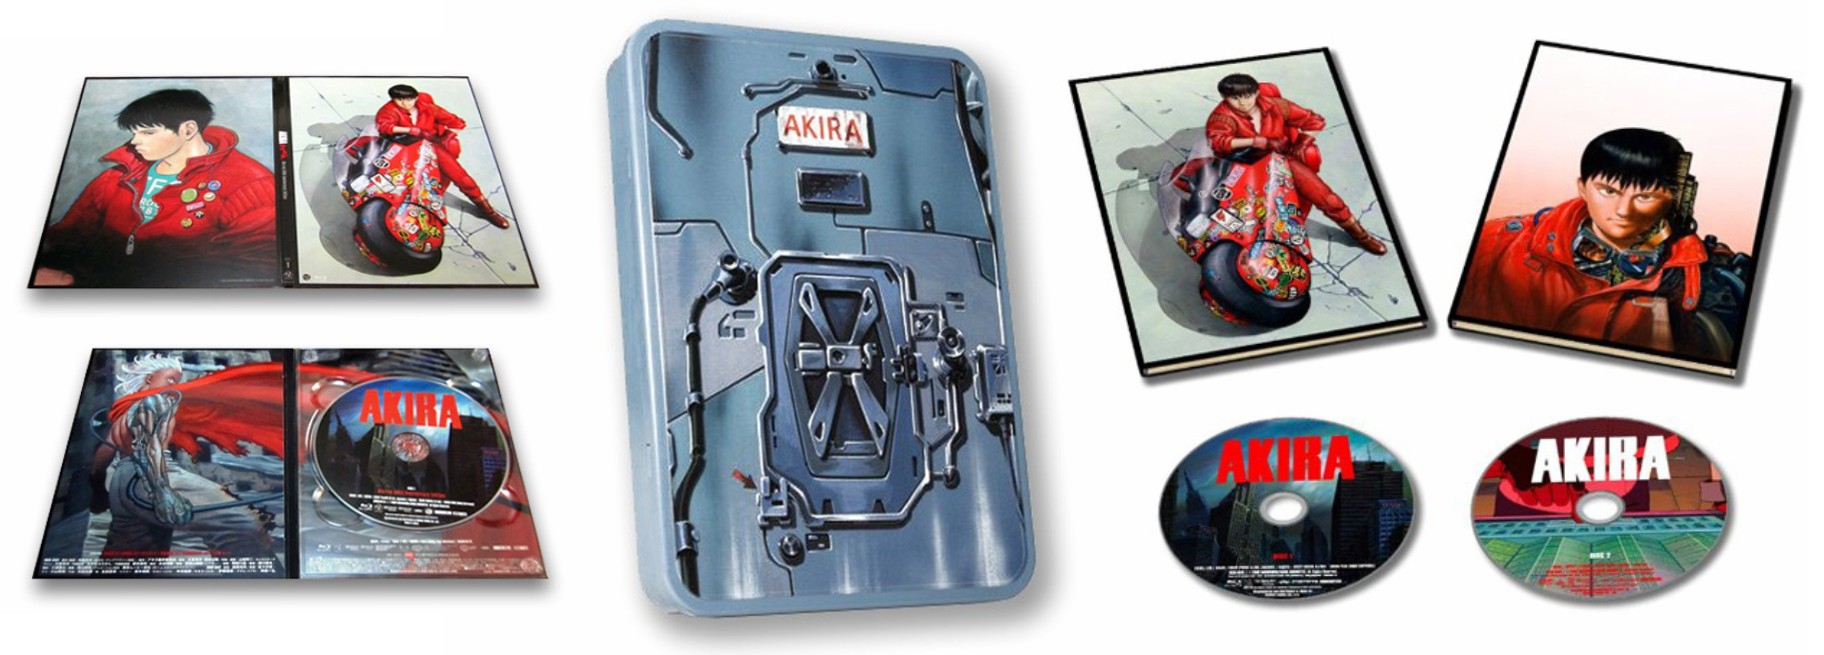 Akira 30th Anniversary Limited-Edition Blu-ray